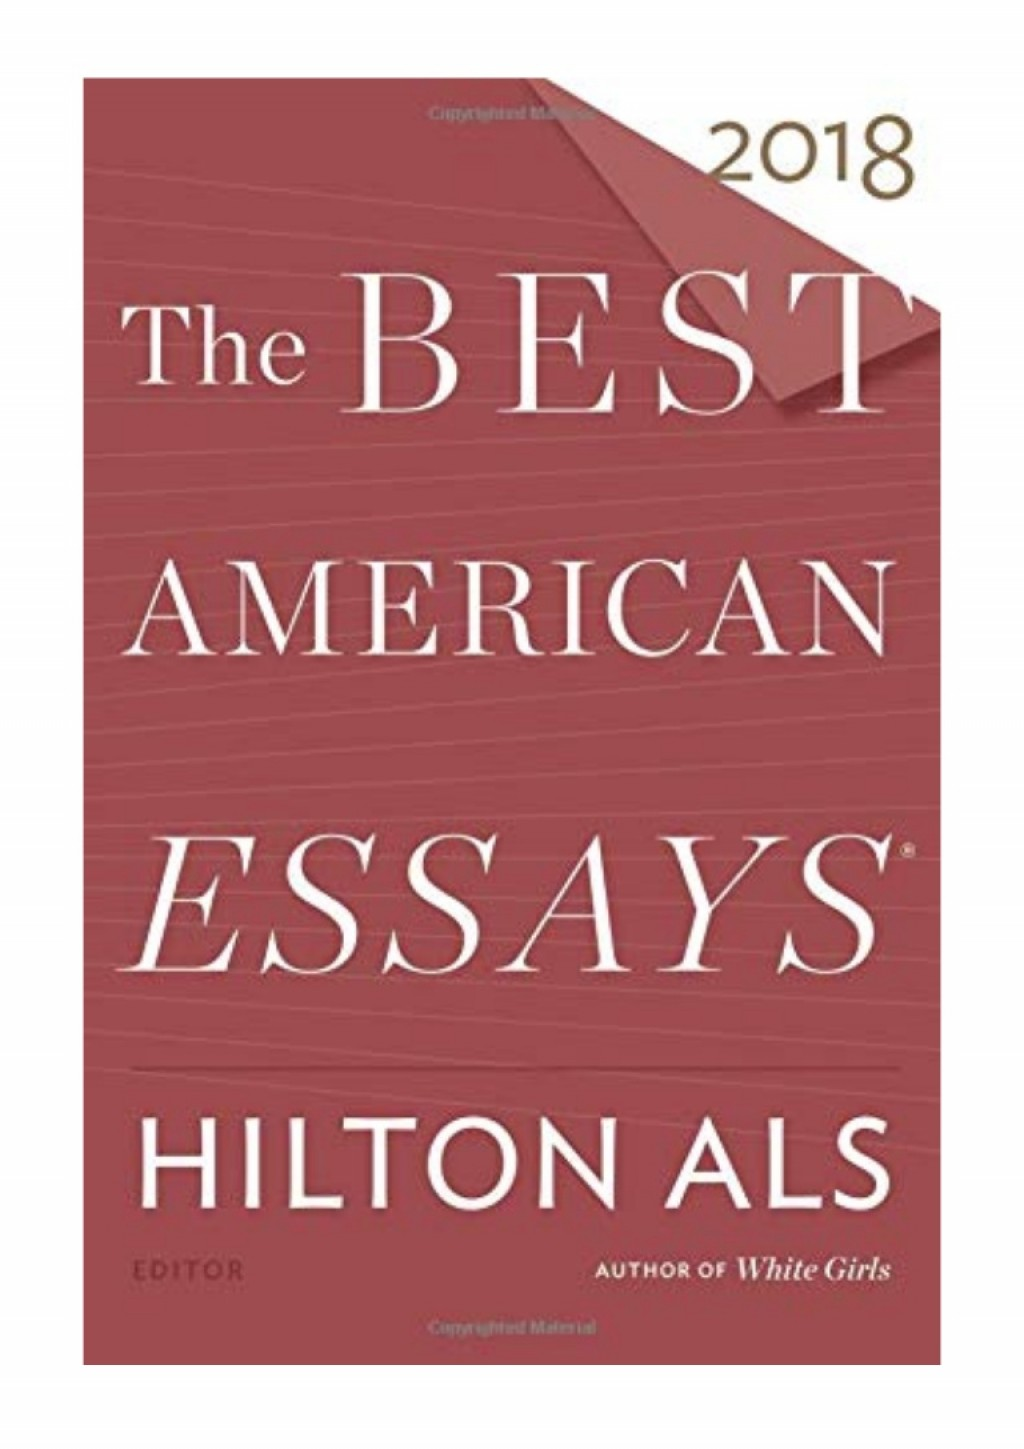 016 The Best American Essays Essay Example Thebestamericanessays2018by Thumbnail Wonderful Of Century Table Contents 2013 Pdf Download Large